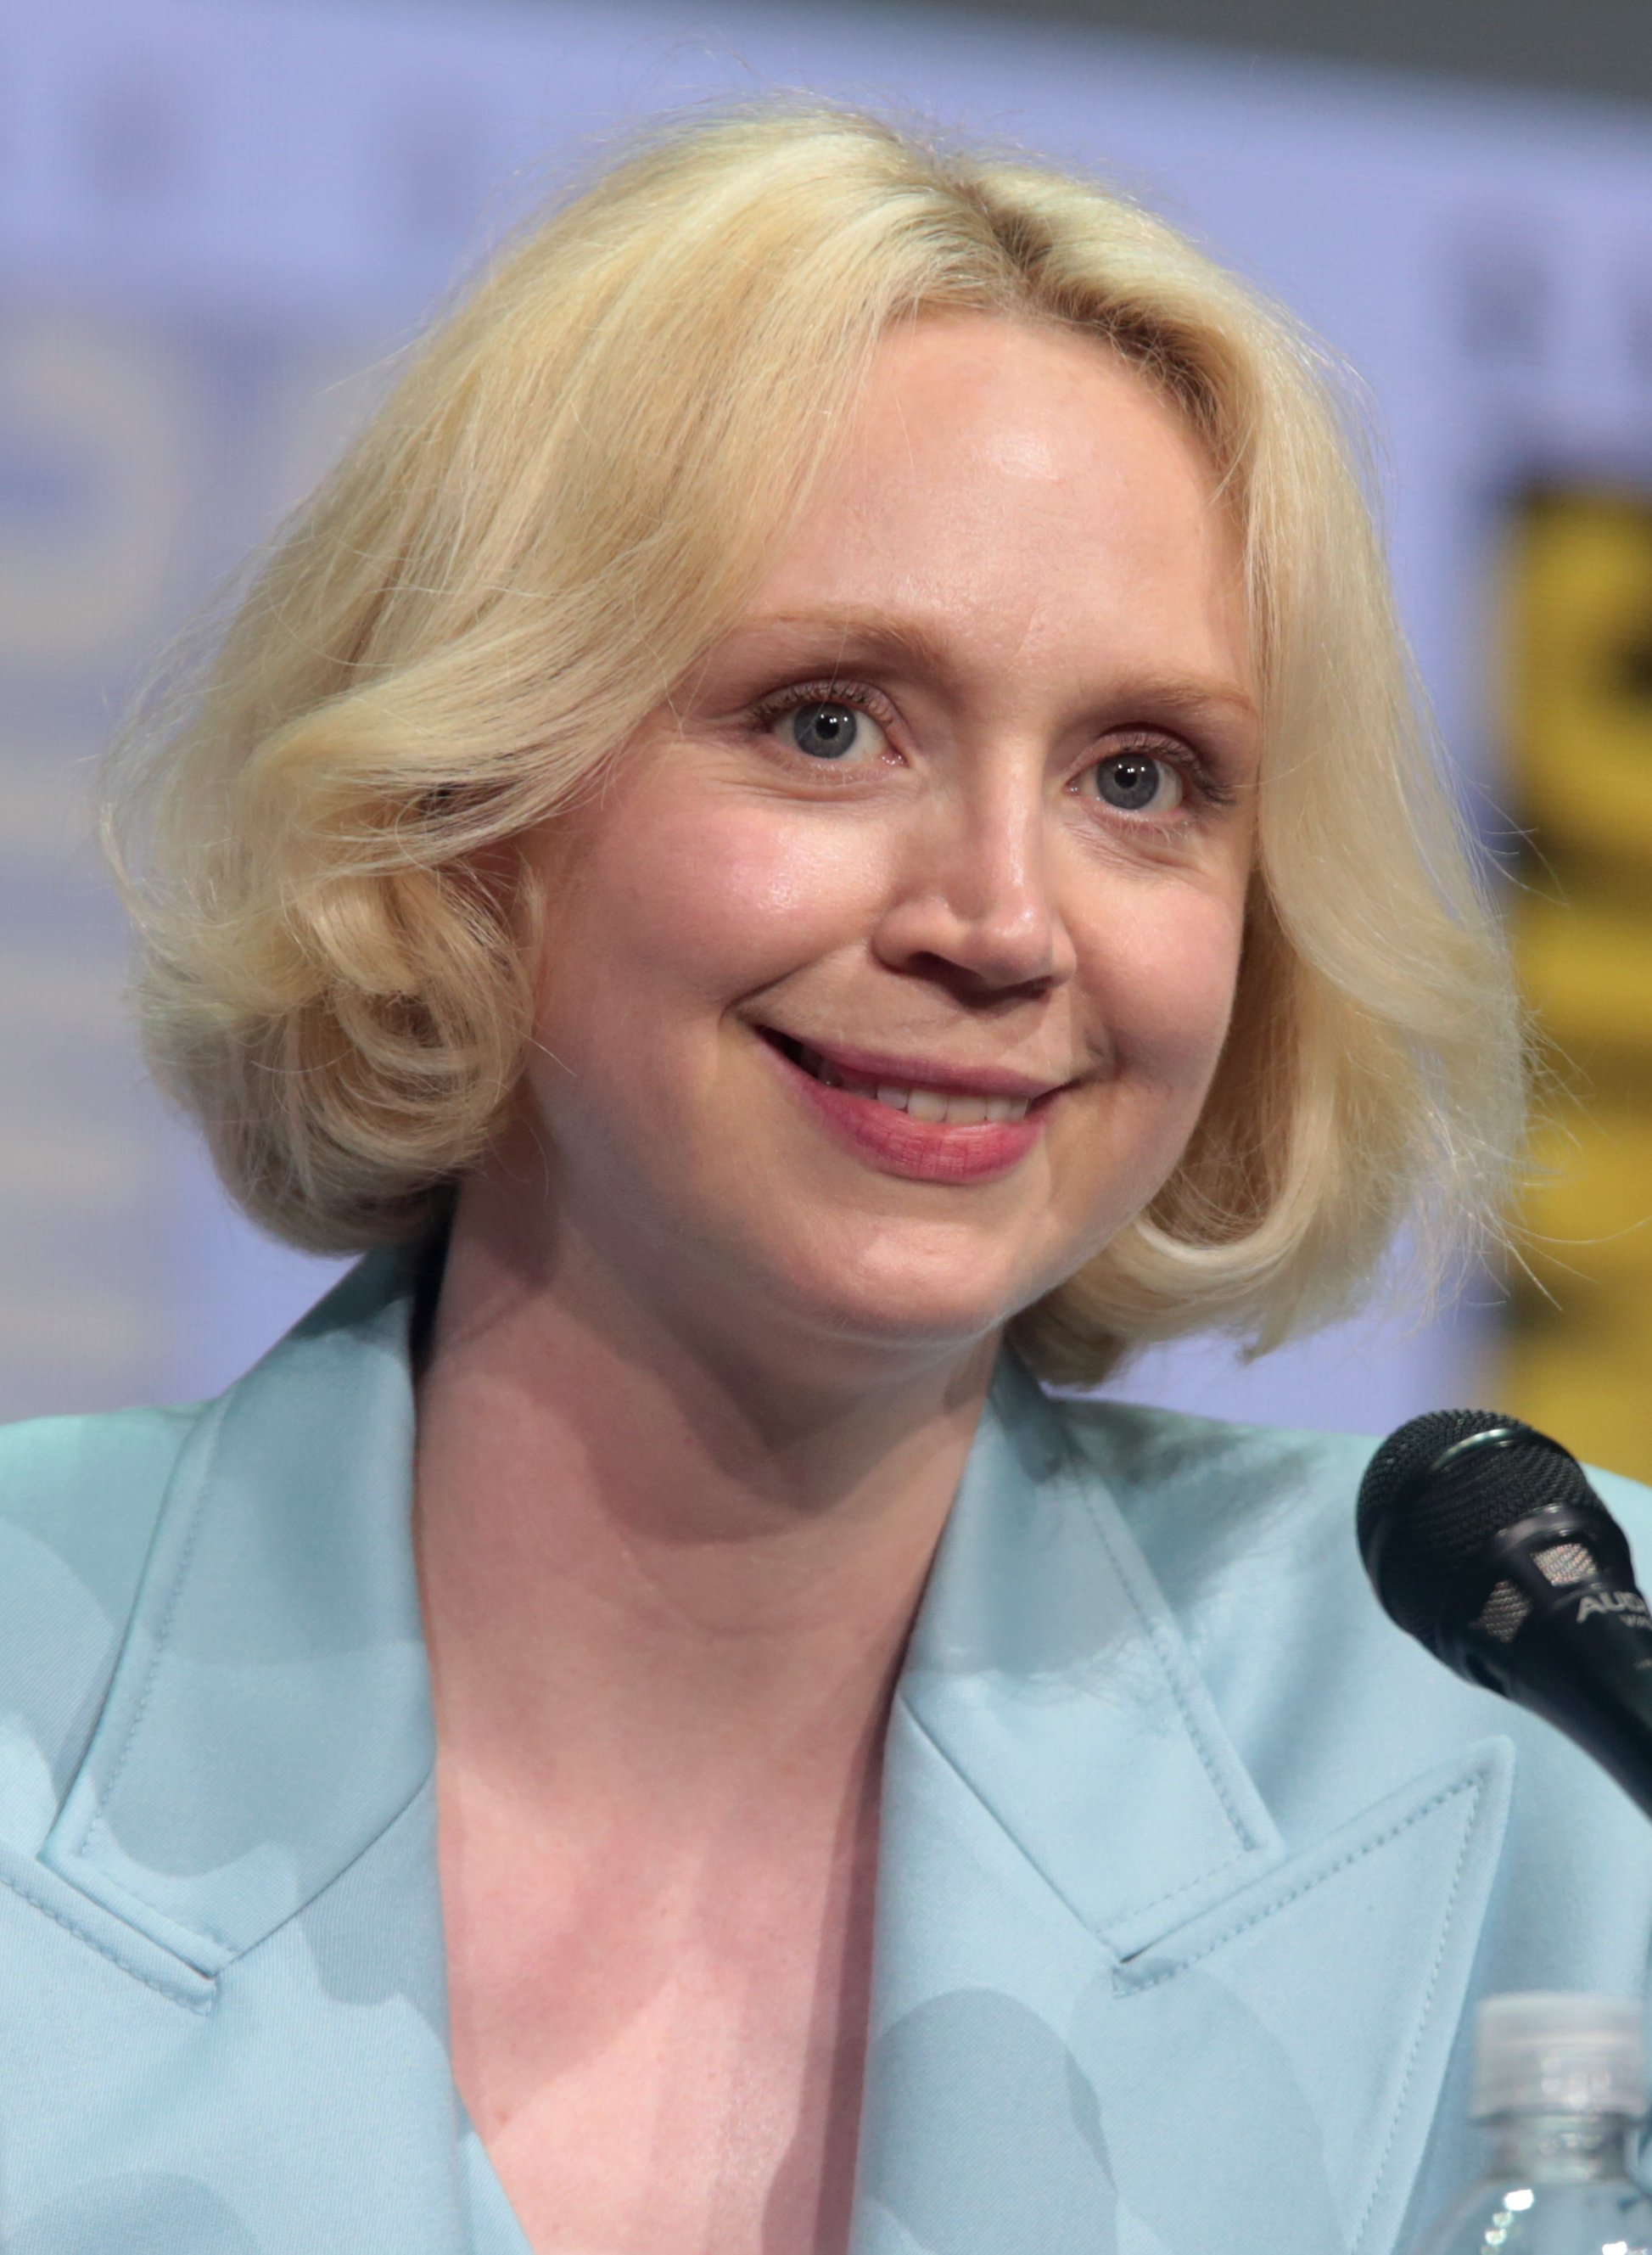 The 40-year old daughter of father (?) and mother(?) Gwendoline Christie in 2018 photo. Gwendoline Christie earned a  million dollar salary - leaving the net worth at 0.5 million in 2018